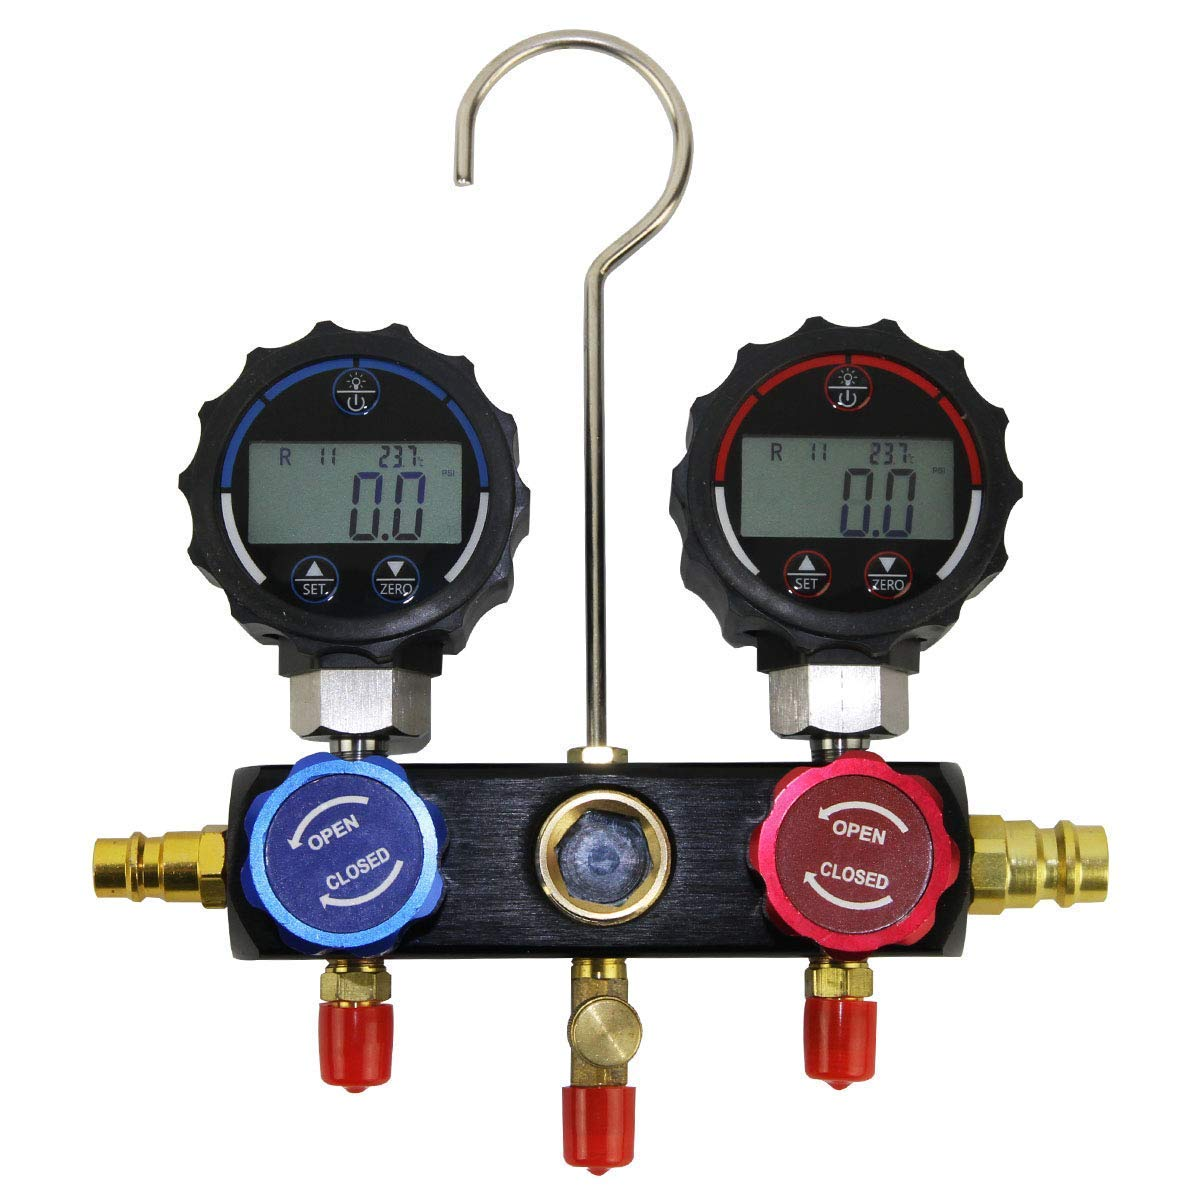 Elitech High-tech Digital Pressure Gauge A/C Diagnostic Manifold Gauge Kit for UP to 37 Types of Refrigerant Testing and Monitoring DMG-1 TPM-30A